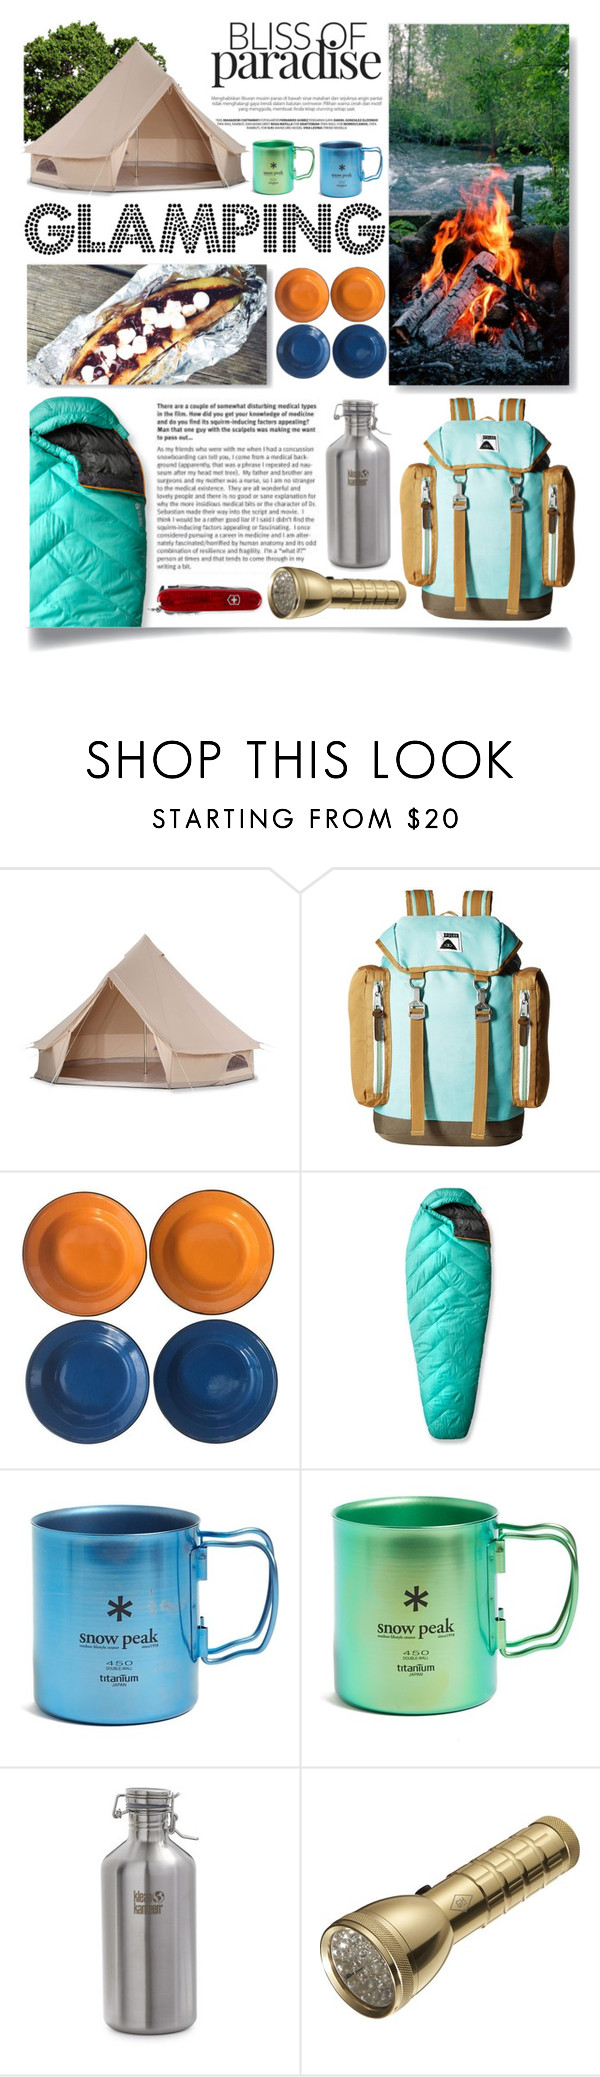 """""""Let's Go Glamping!"""" by ittie-kittie ❤ liked on Polyvore featuring interior, interiors, interior design, home, home decor, interior decorating, Poler, Mountain Hardwear, Snow Peak and klean kanteen"""